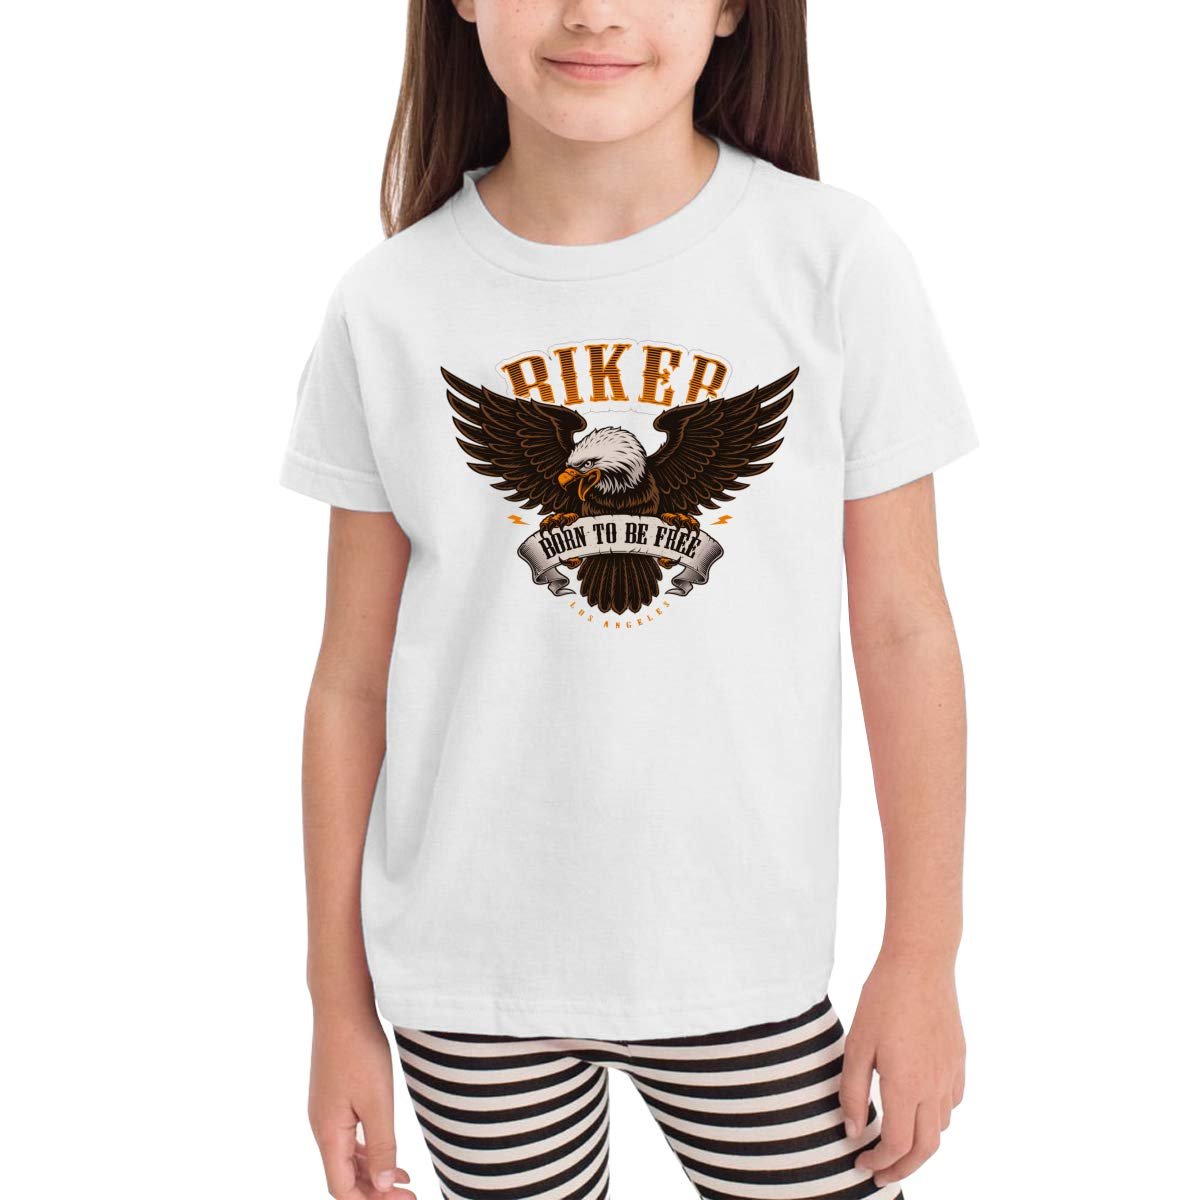 Biker Born to Be Free Toddler Boys Girls Short Sleeve T Shirt Kids Summer Top Tee 100/% Cotton Clothes 2-6 T